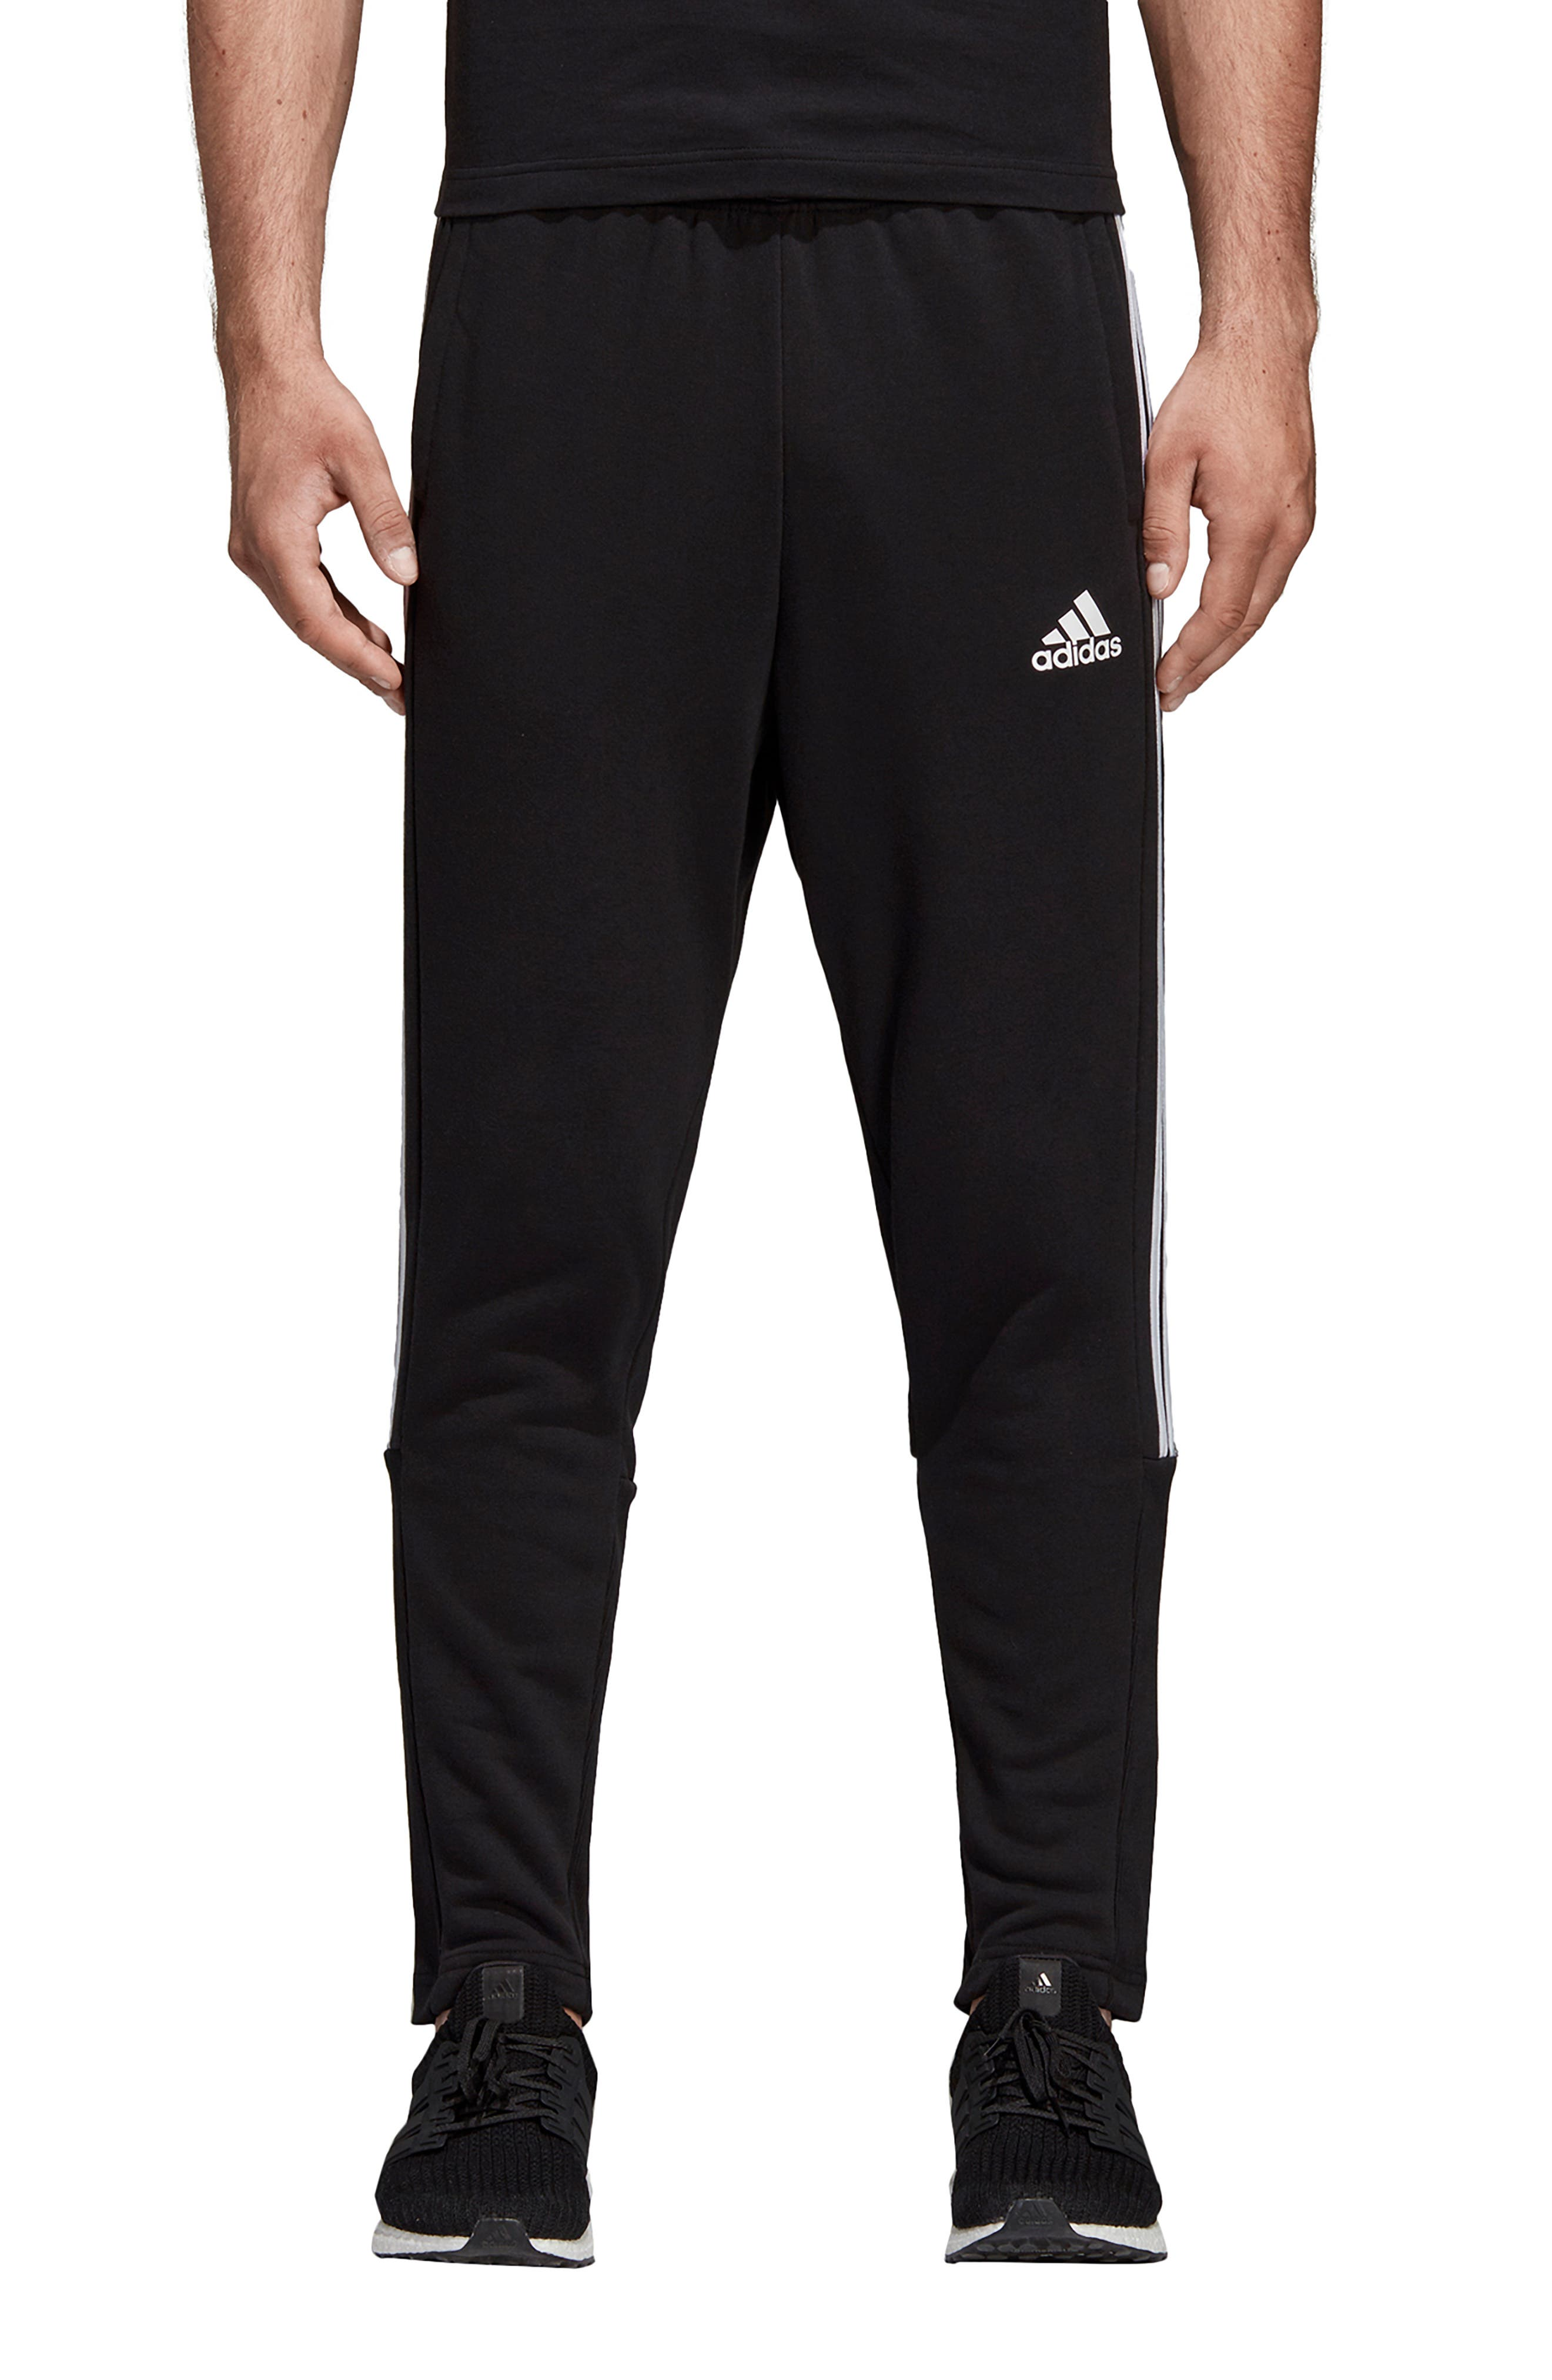 ADIDAS MH 3S Tiro Sweatpants, Main, color, BLACK/ WHITE